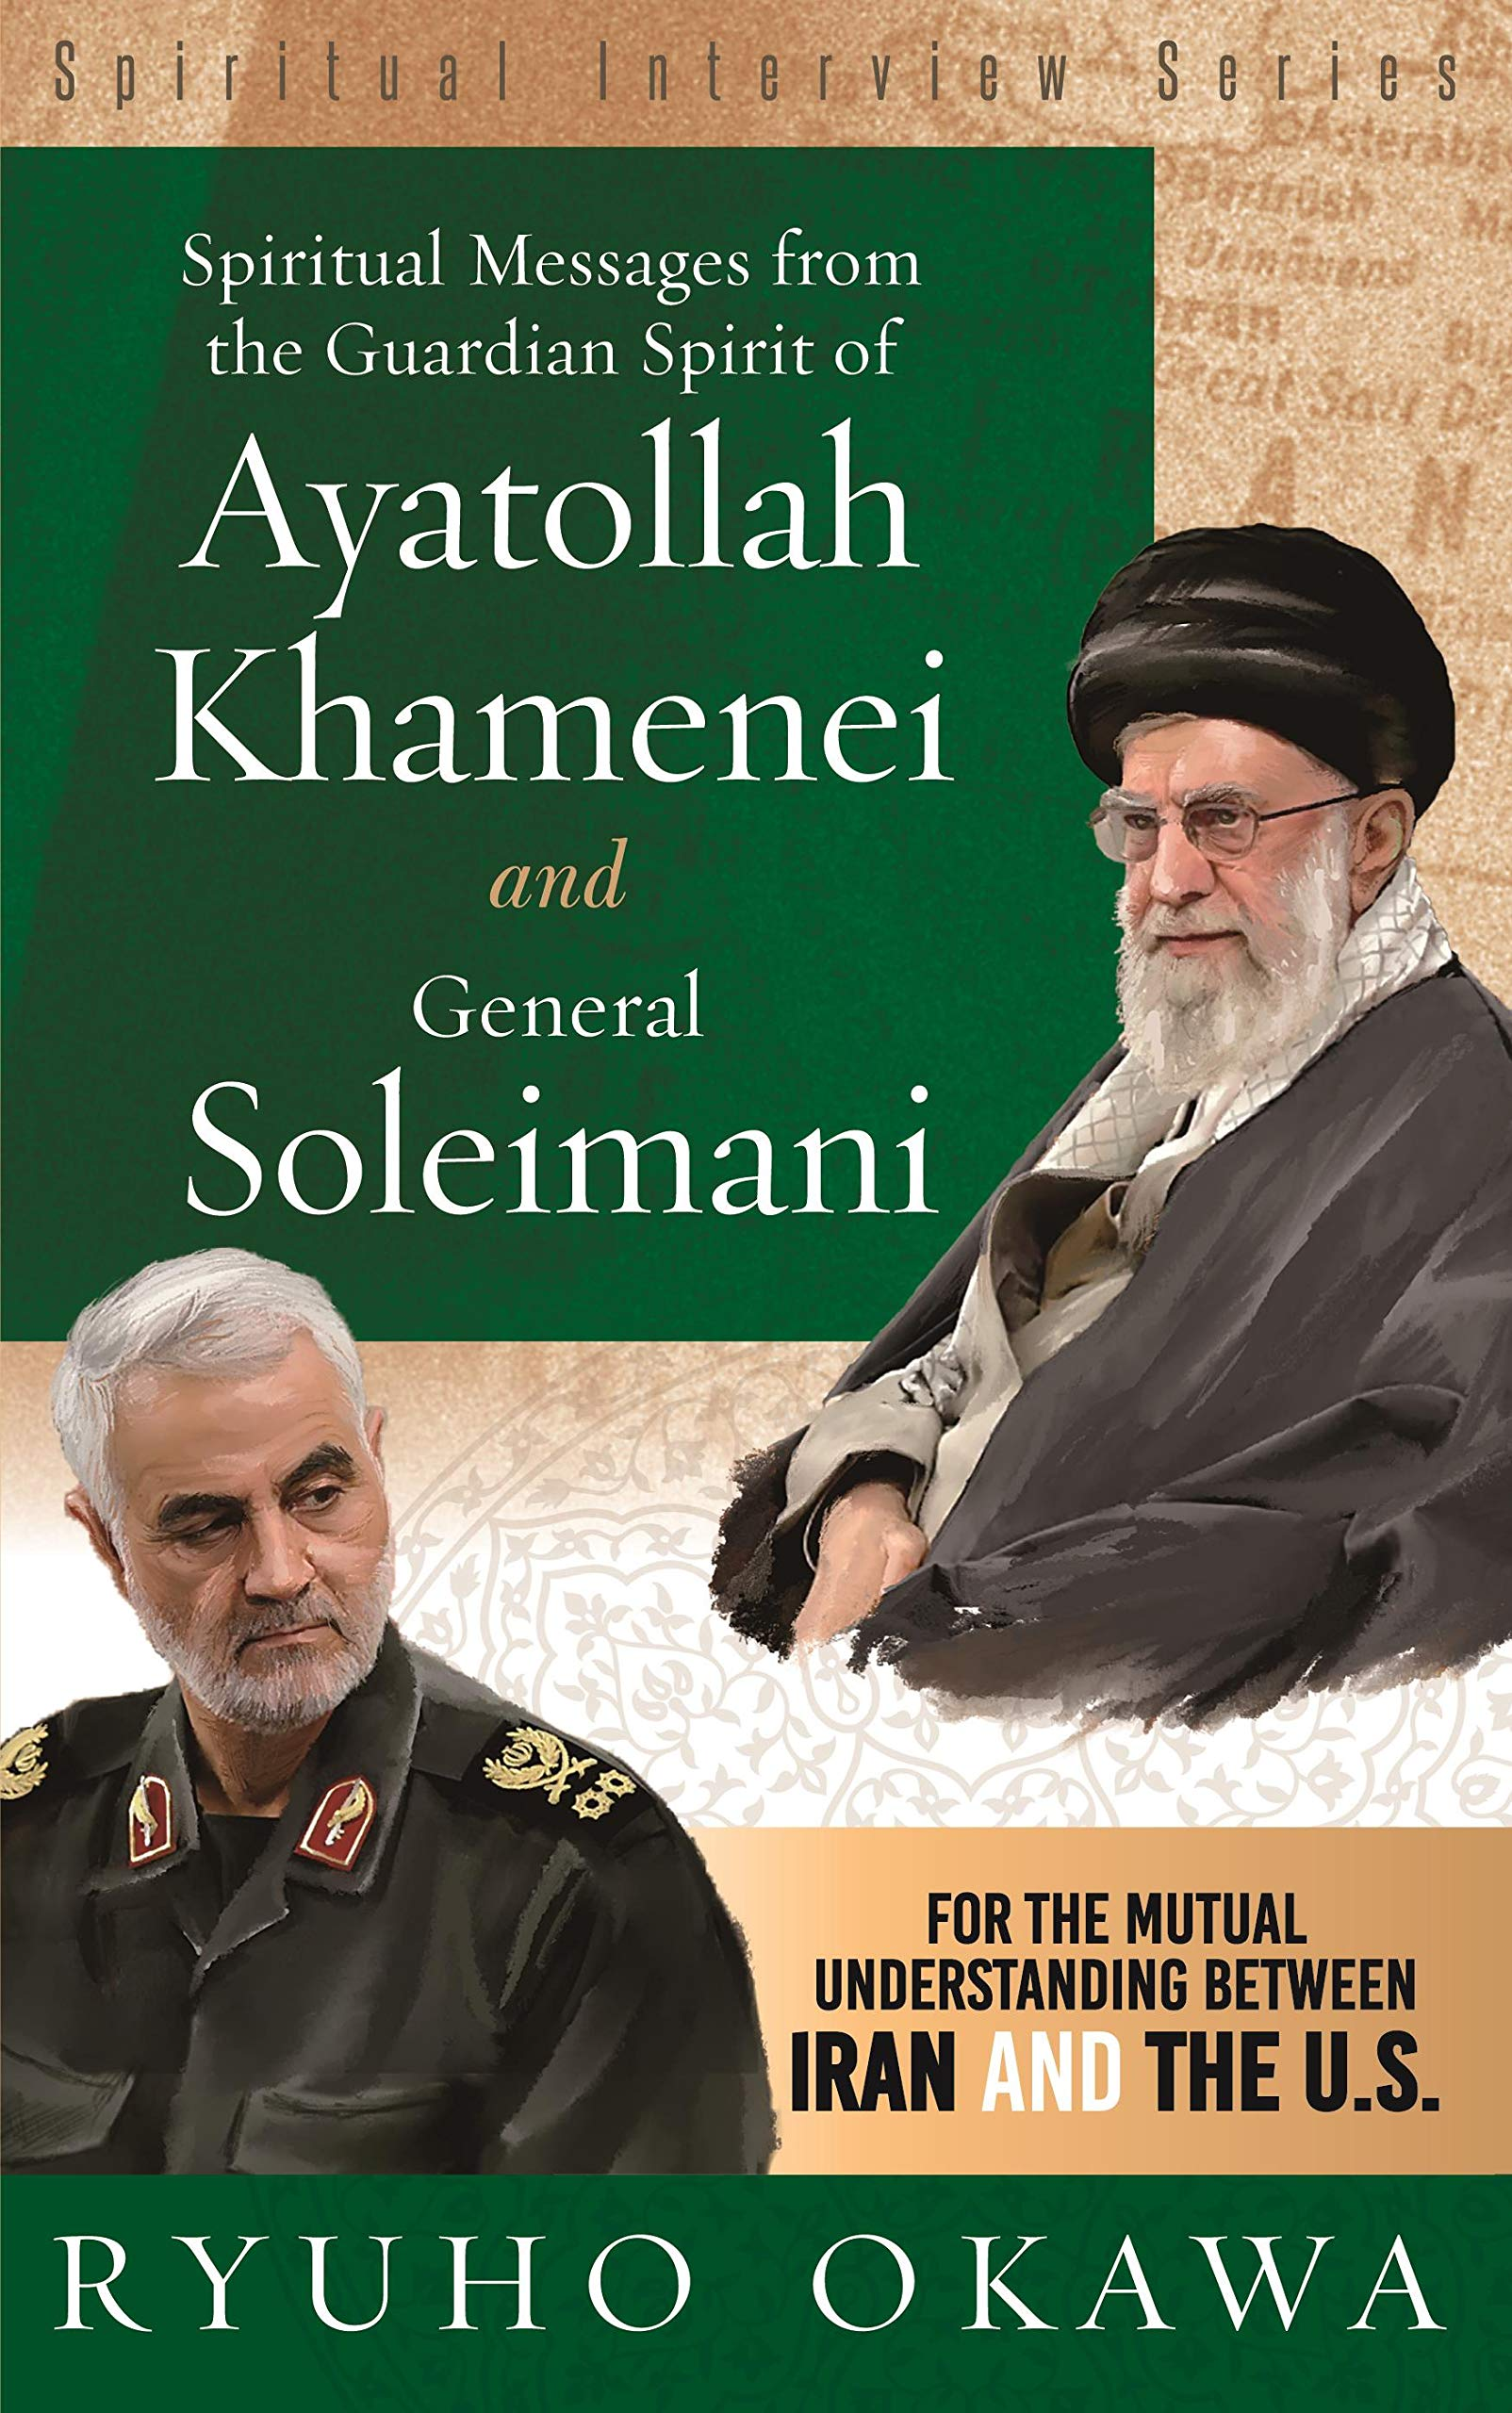 Spiritual Messages from the Guardian Spirit of Ayatollah Khamenei and General Soleimani: For the Mutual Understanding between Iran and The U.S. (Spiritual Interview Series)